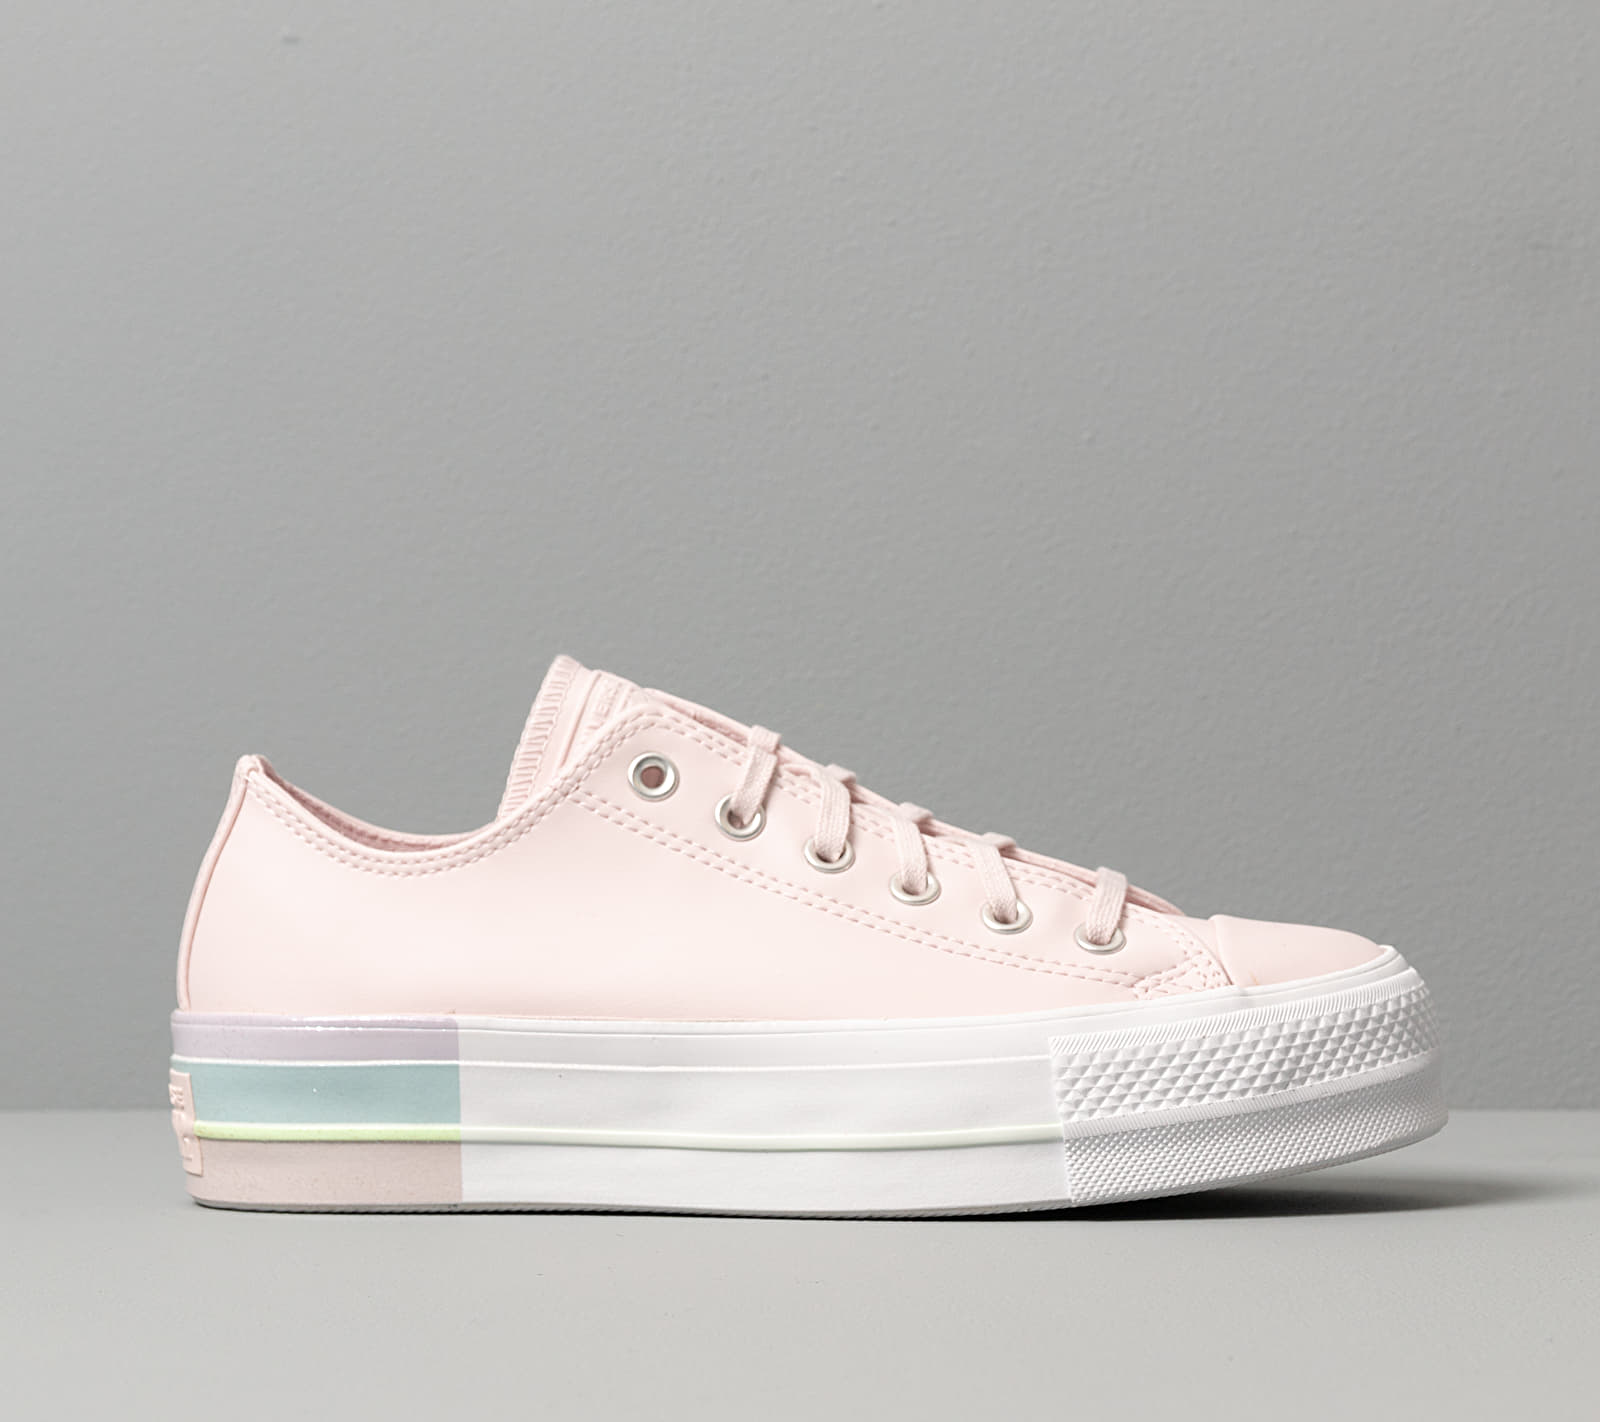 Converse Chuck Taylor All Star Lift Rainbow Midsole Barely Rose/ Polar Blue, Pink